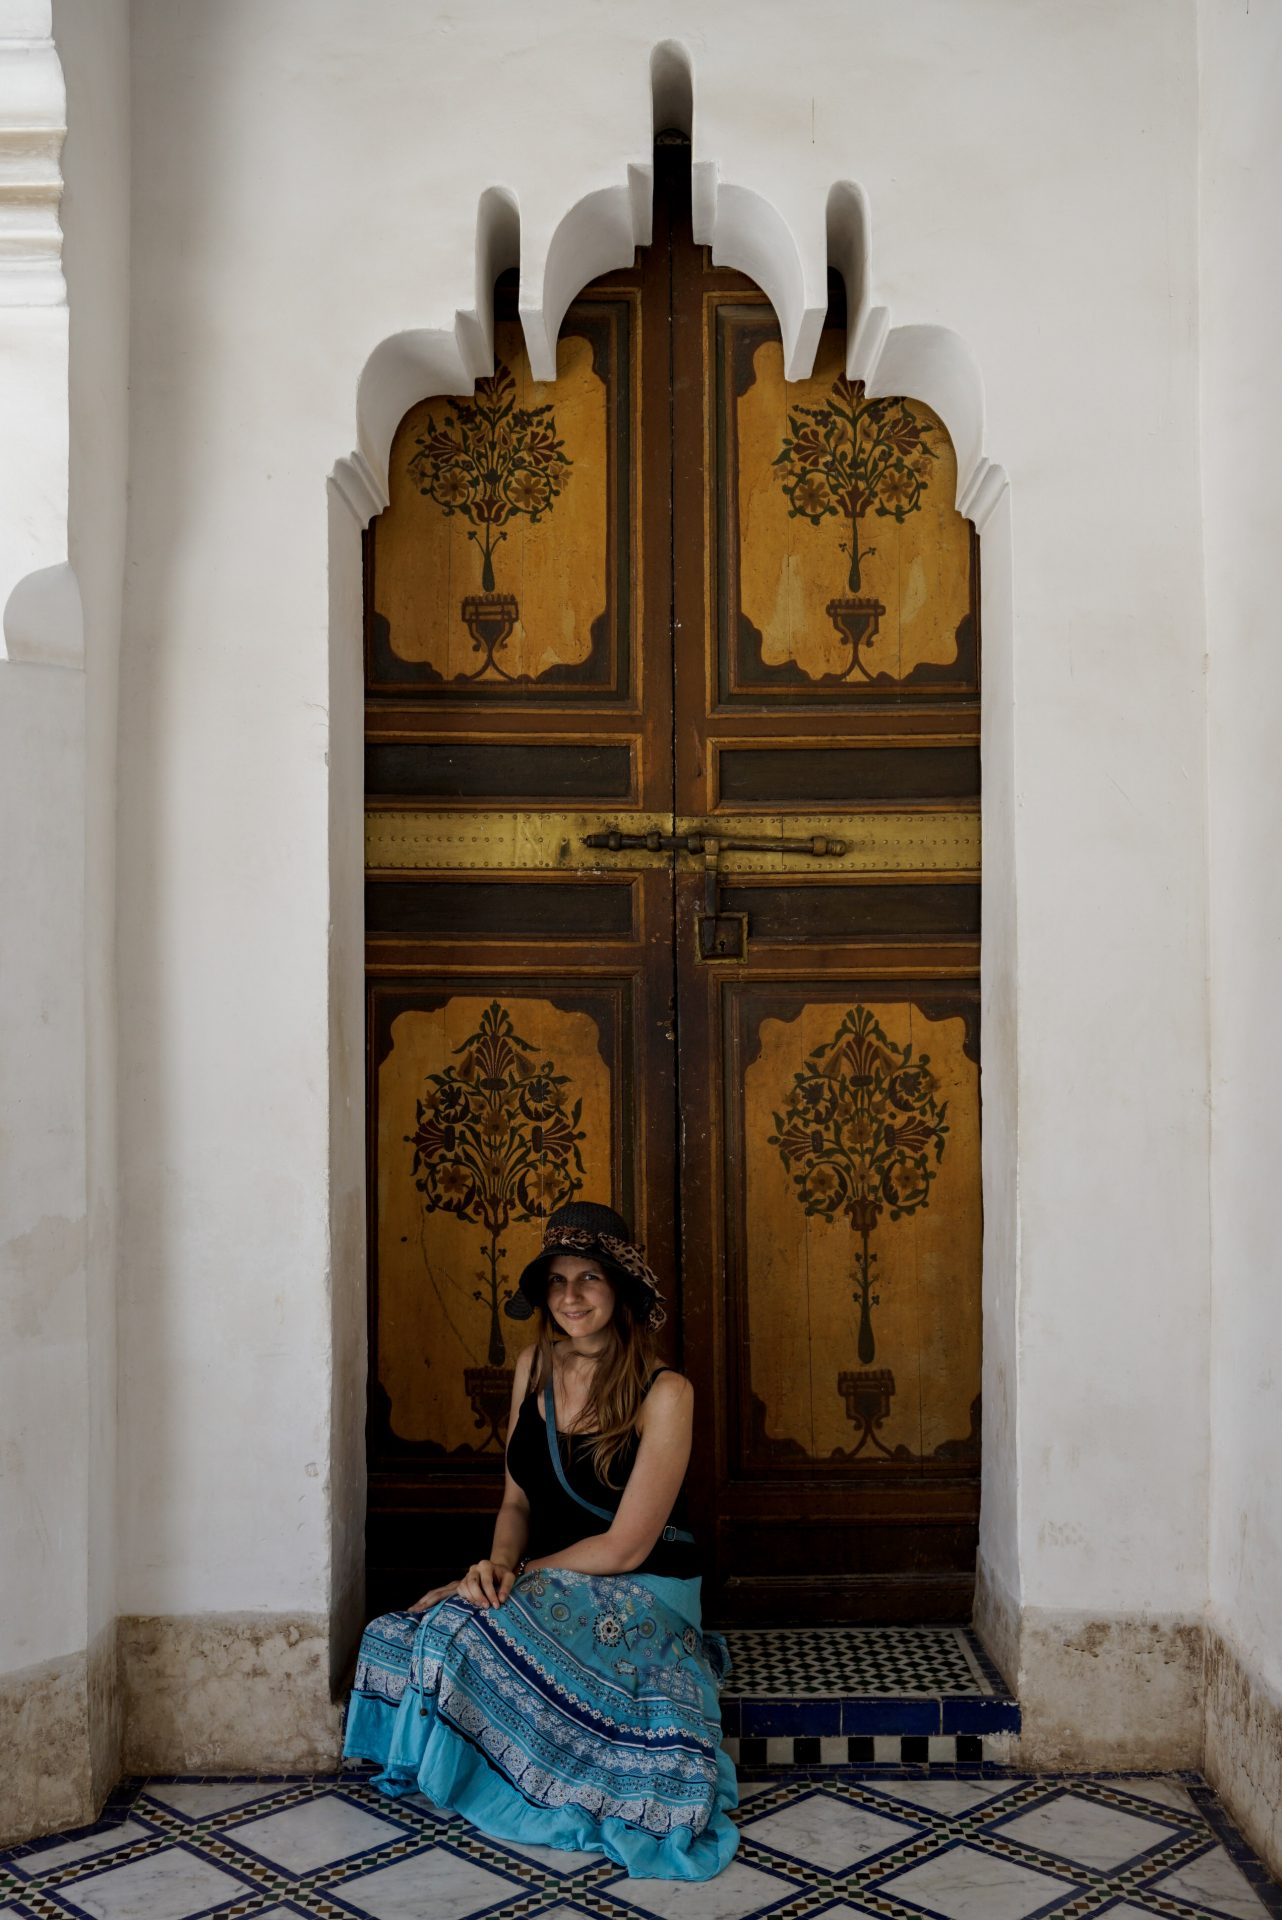 Ben Youssef Madrasa Marrakesh, Morocco - Experiencing the Globe